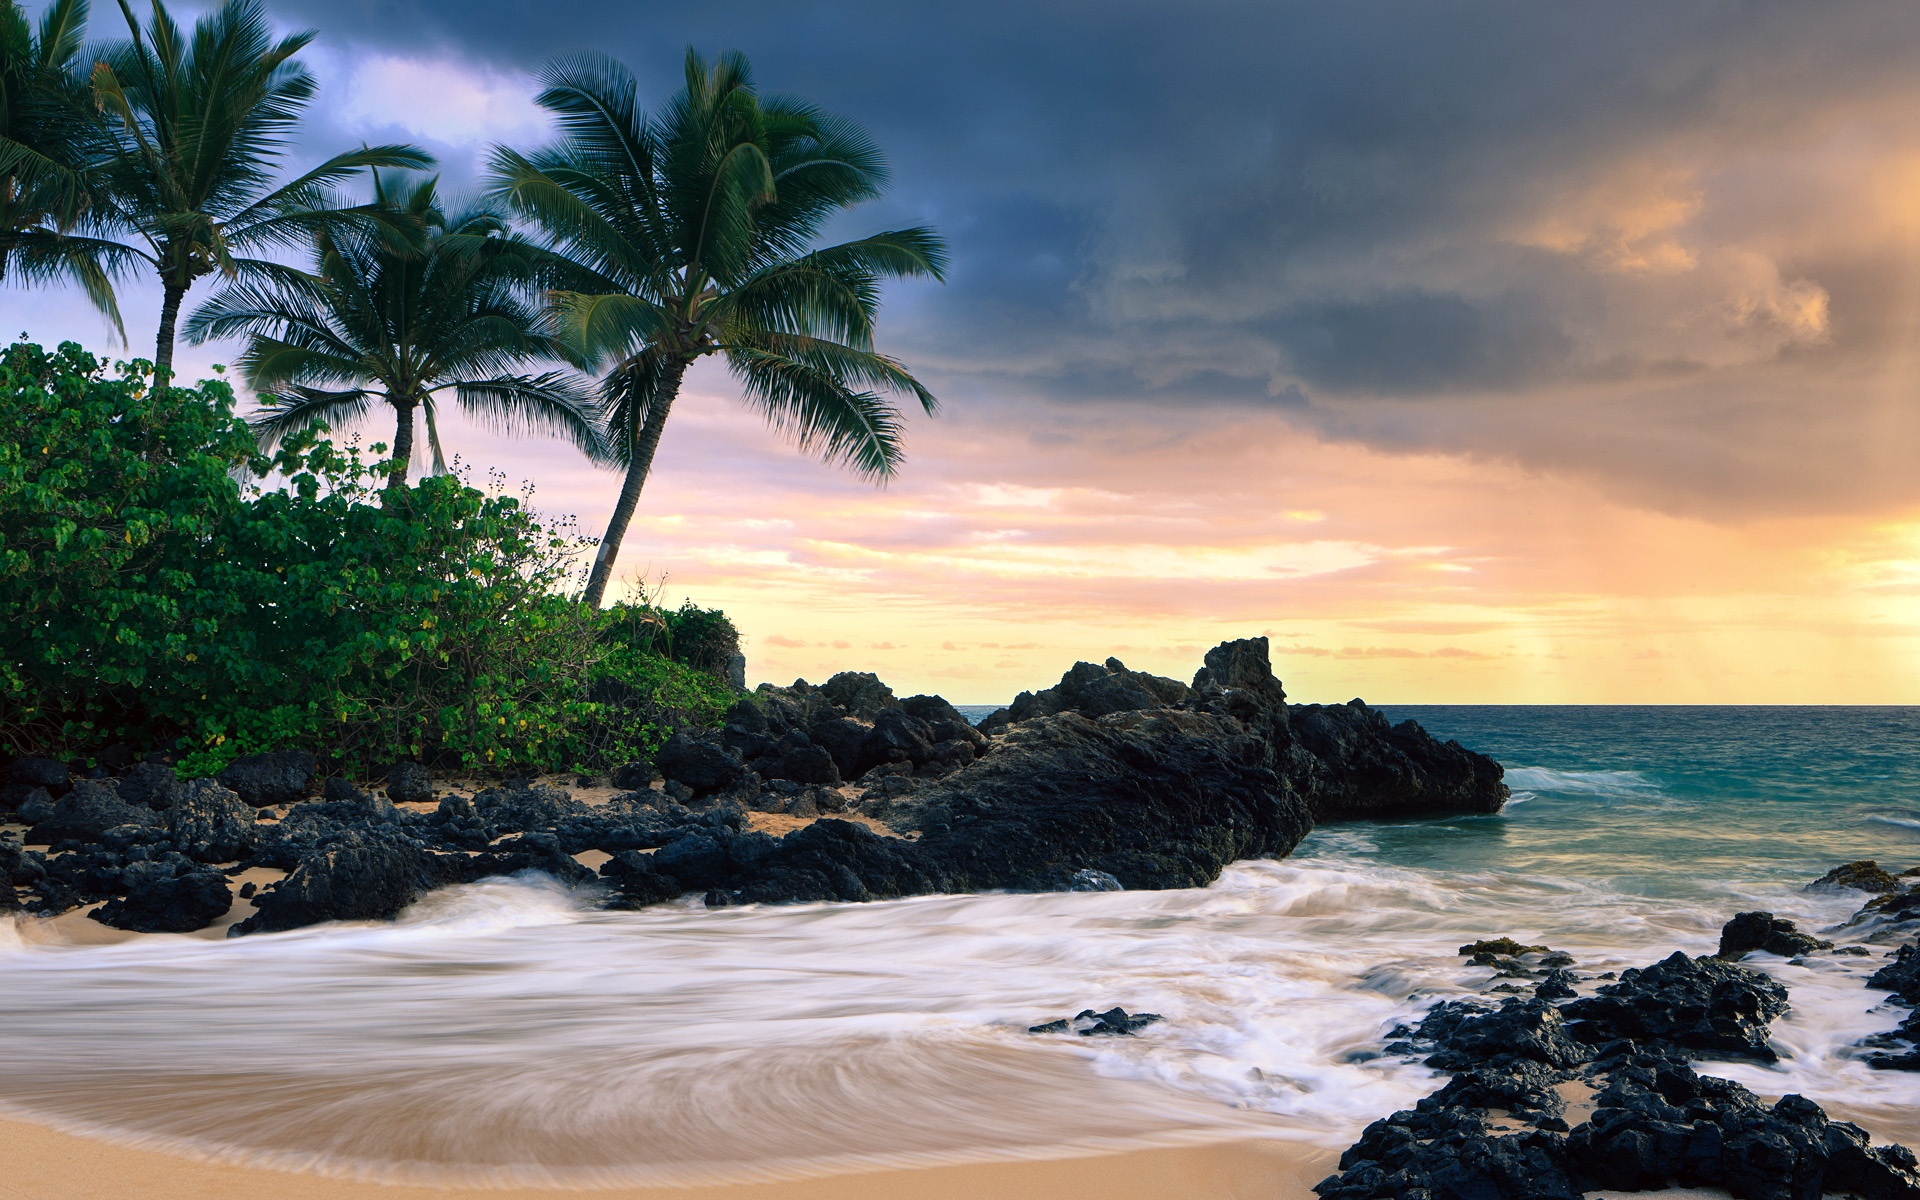 Hawaii Secret Beach HD Wallpapers 1920x1200